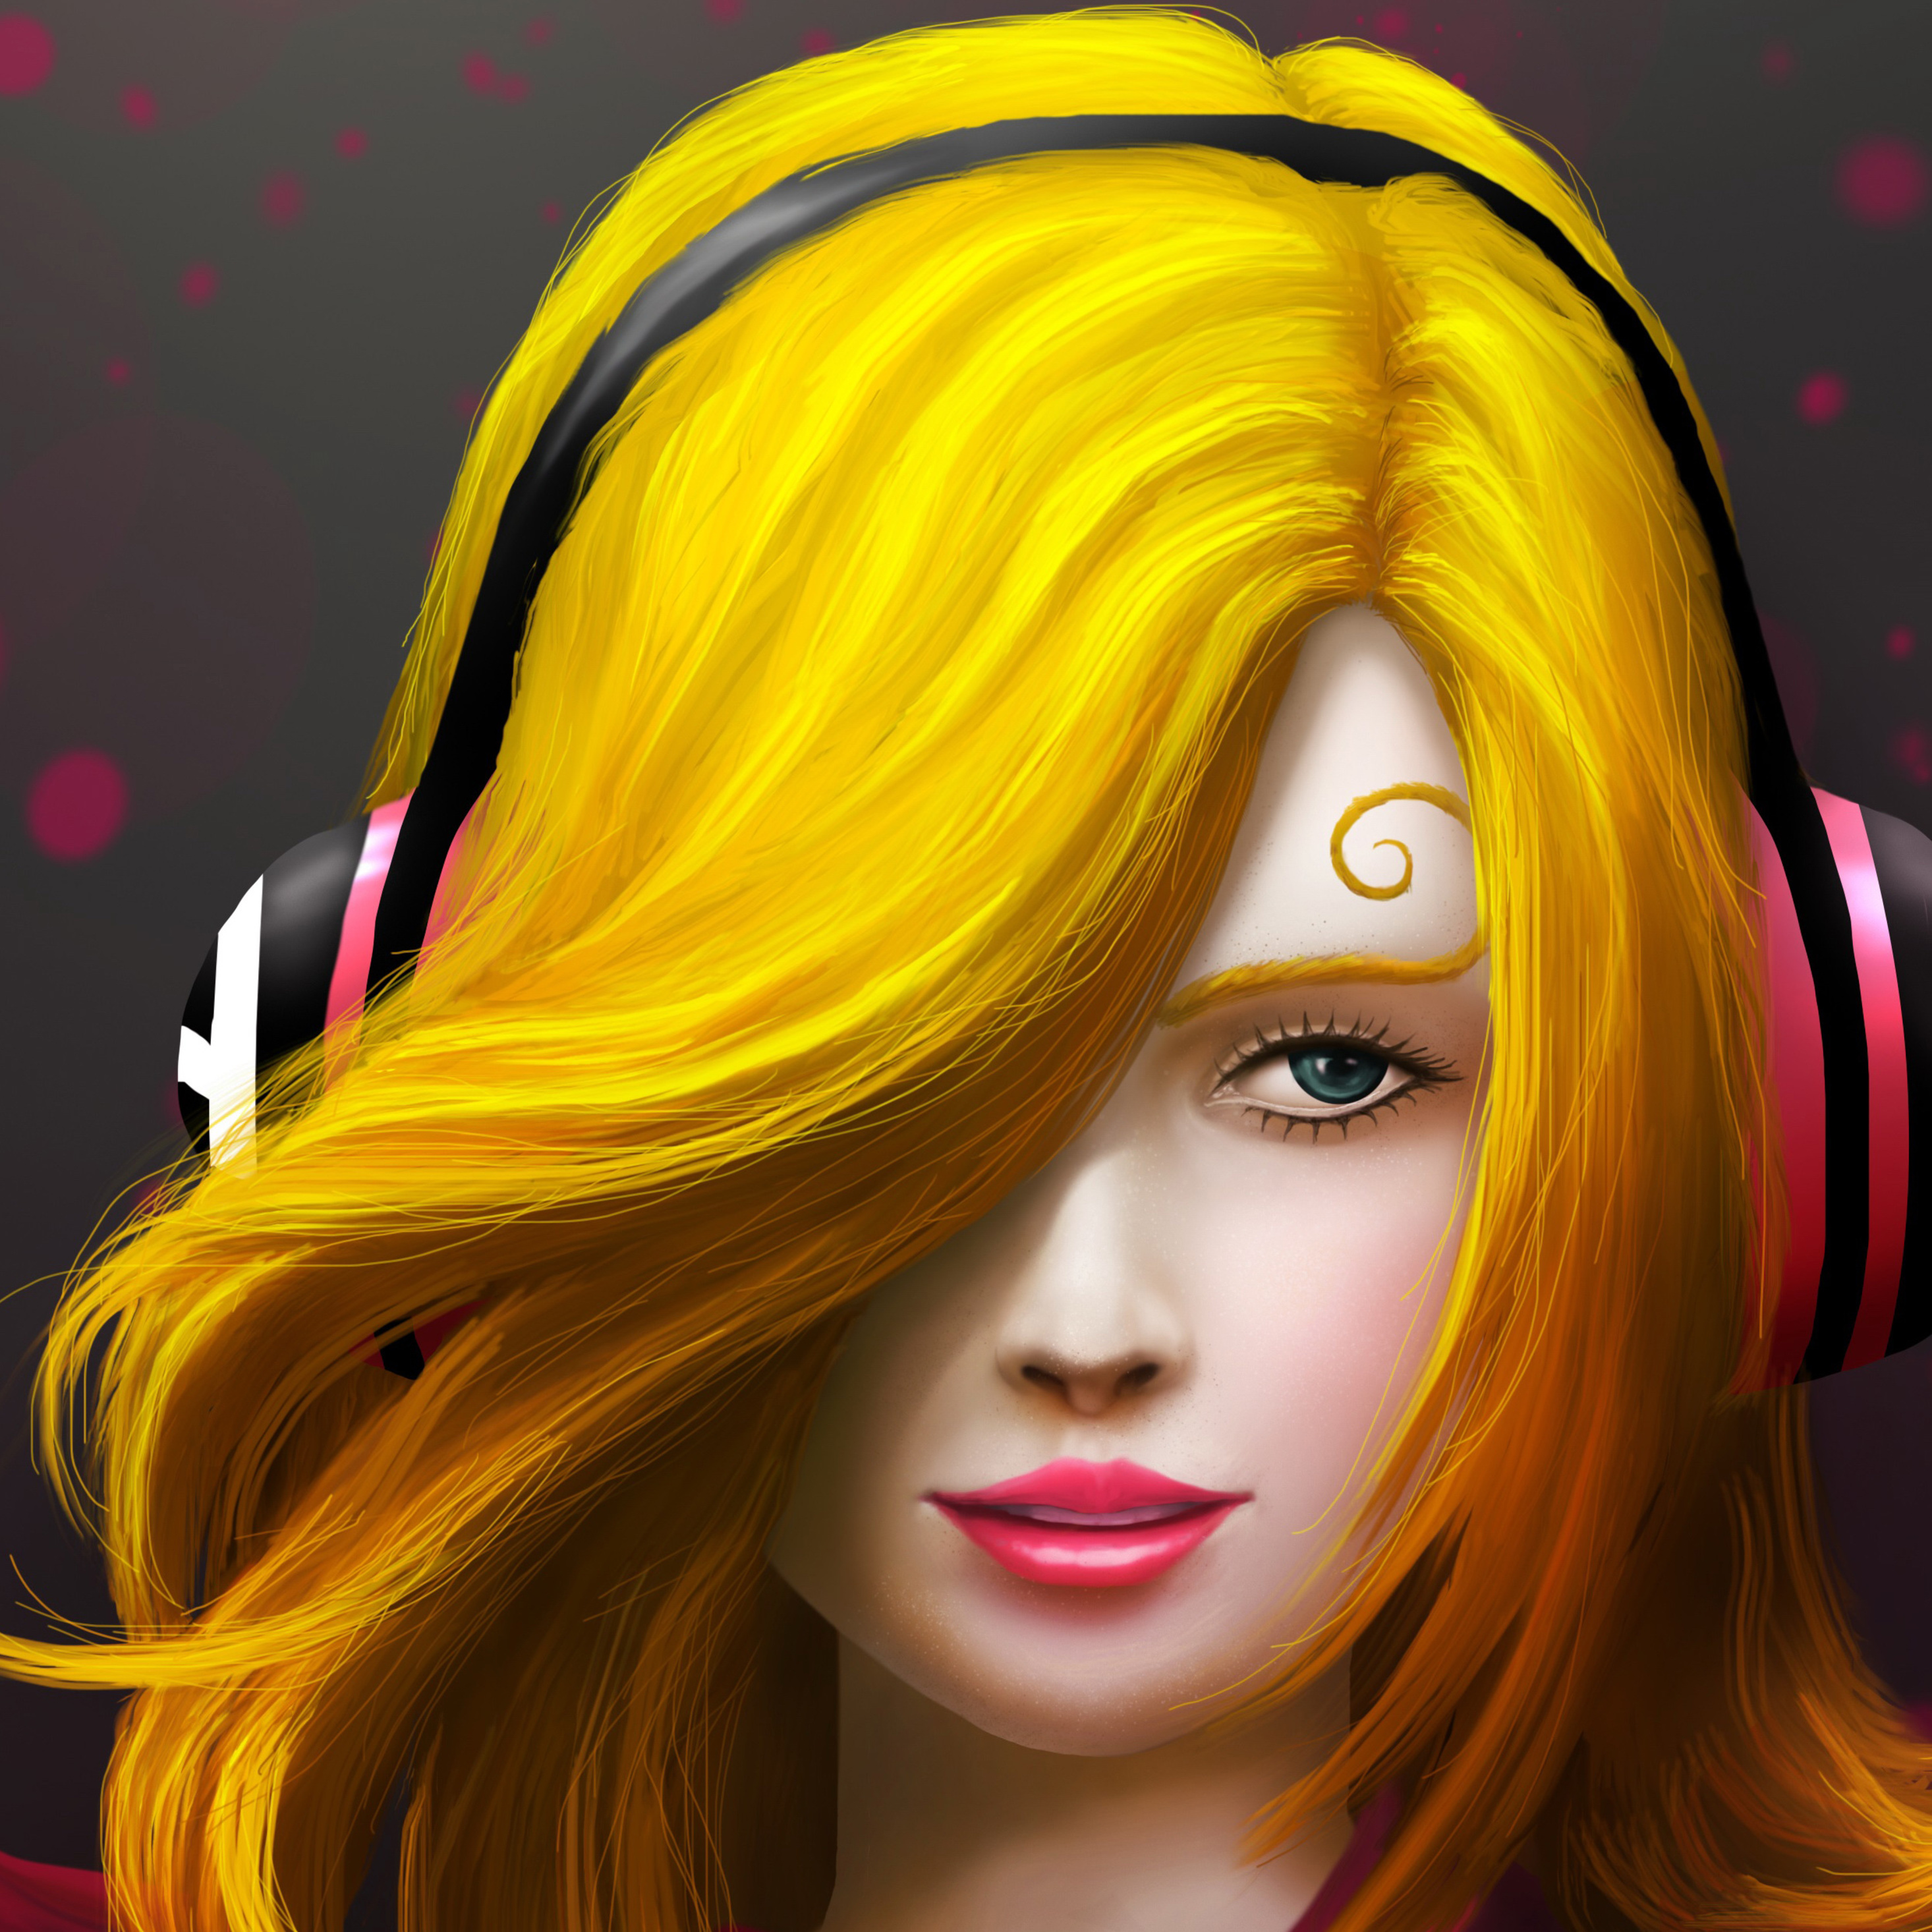 painting-art-girl-headphones-99.jpg